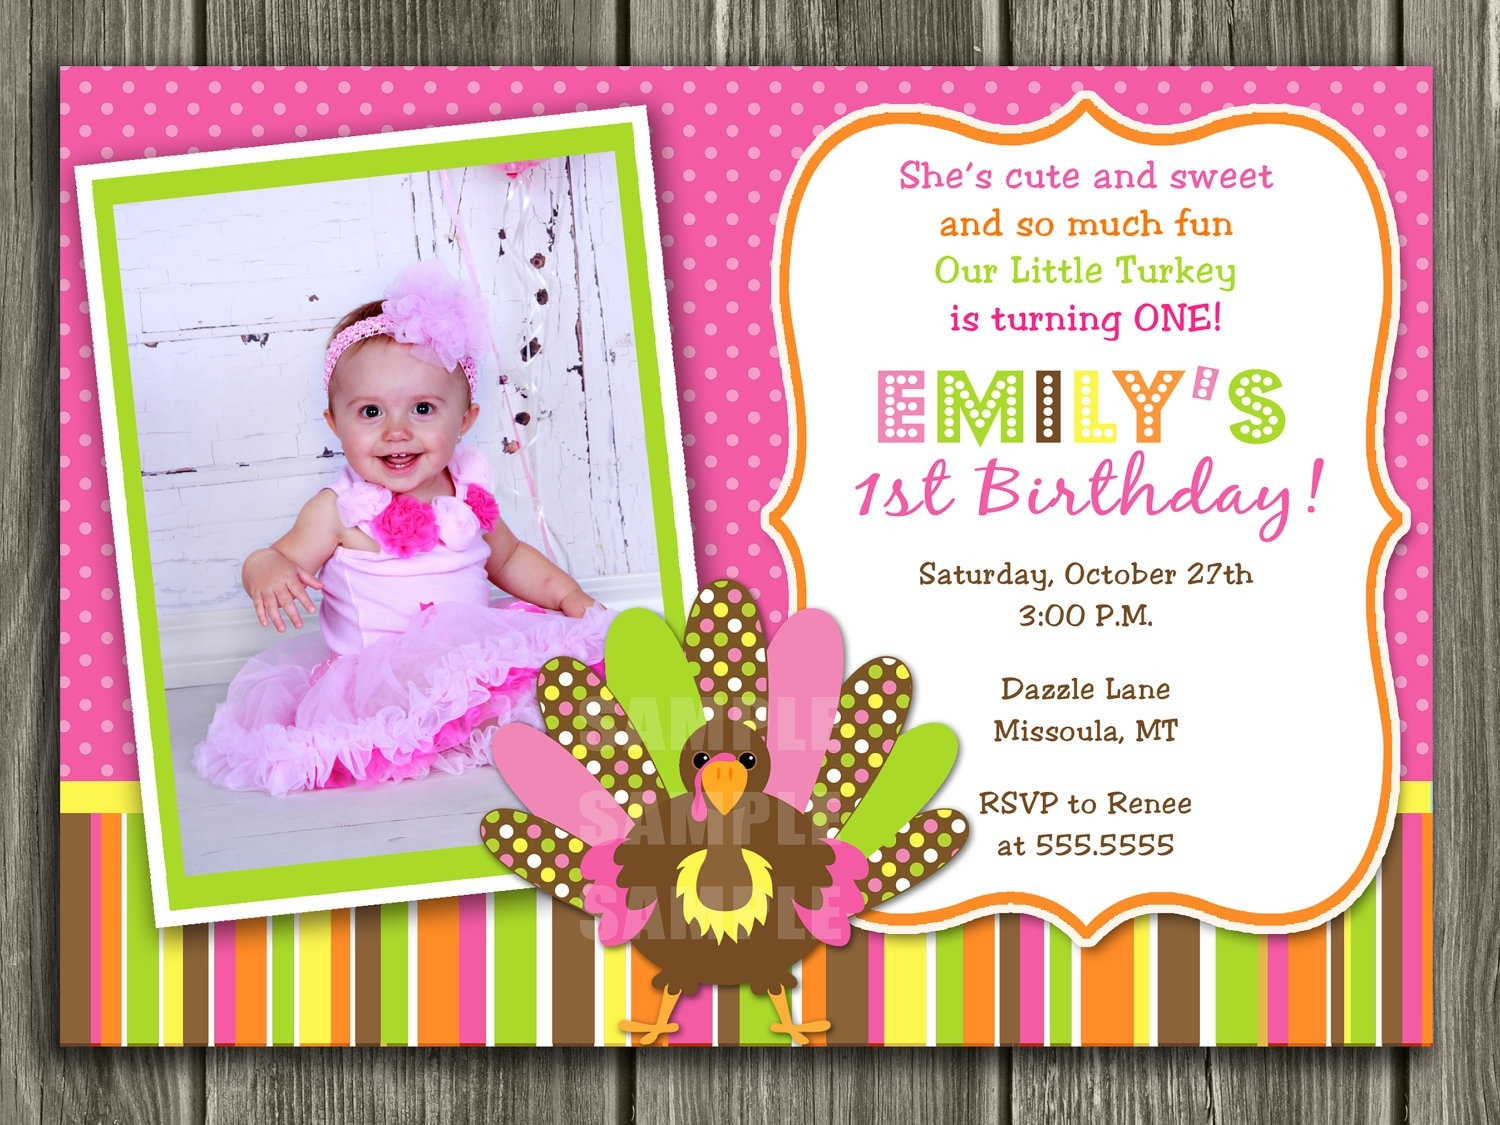 1st birthday invitation wording in marathi ; marathi-invitation-cards-for-first-birthday-1st-birthday-for-birthday-card-invitation-design-in-marathi